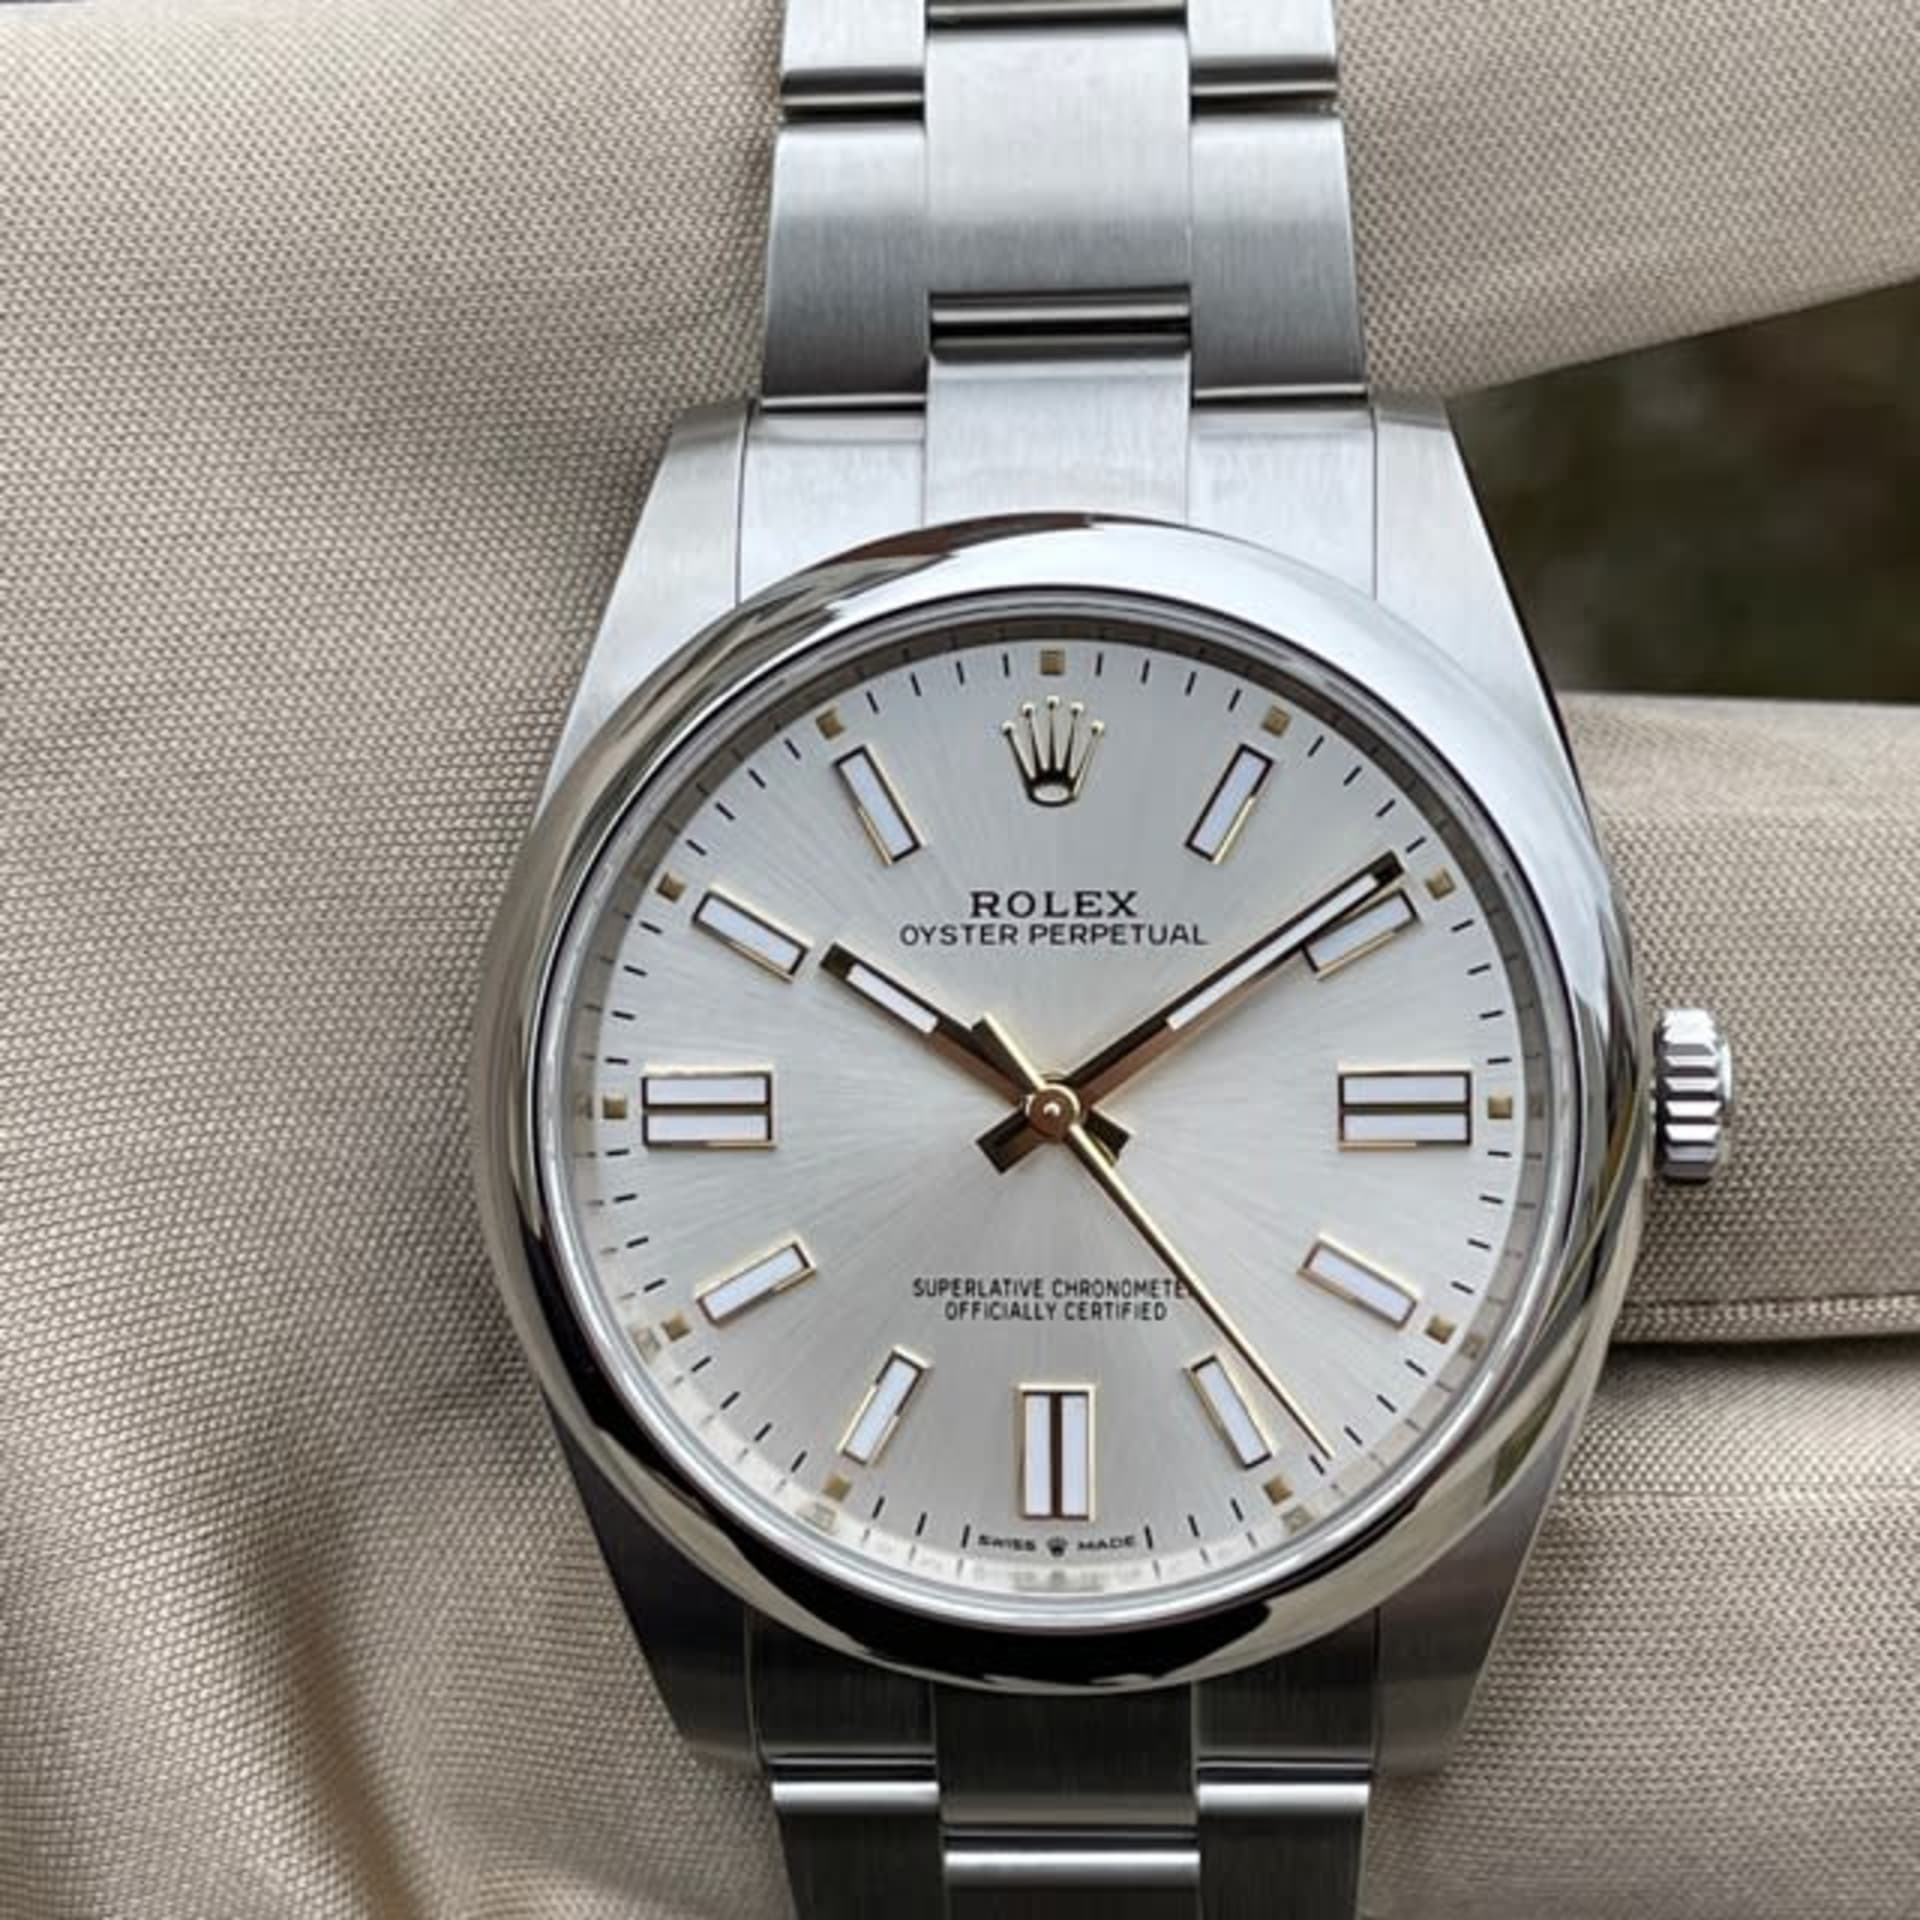 New Rolex Oyster Perpetual 41mm